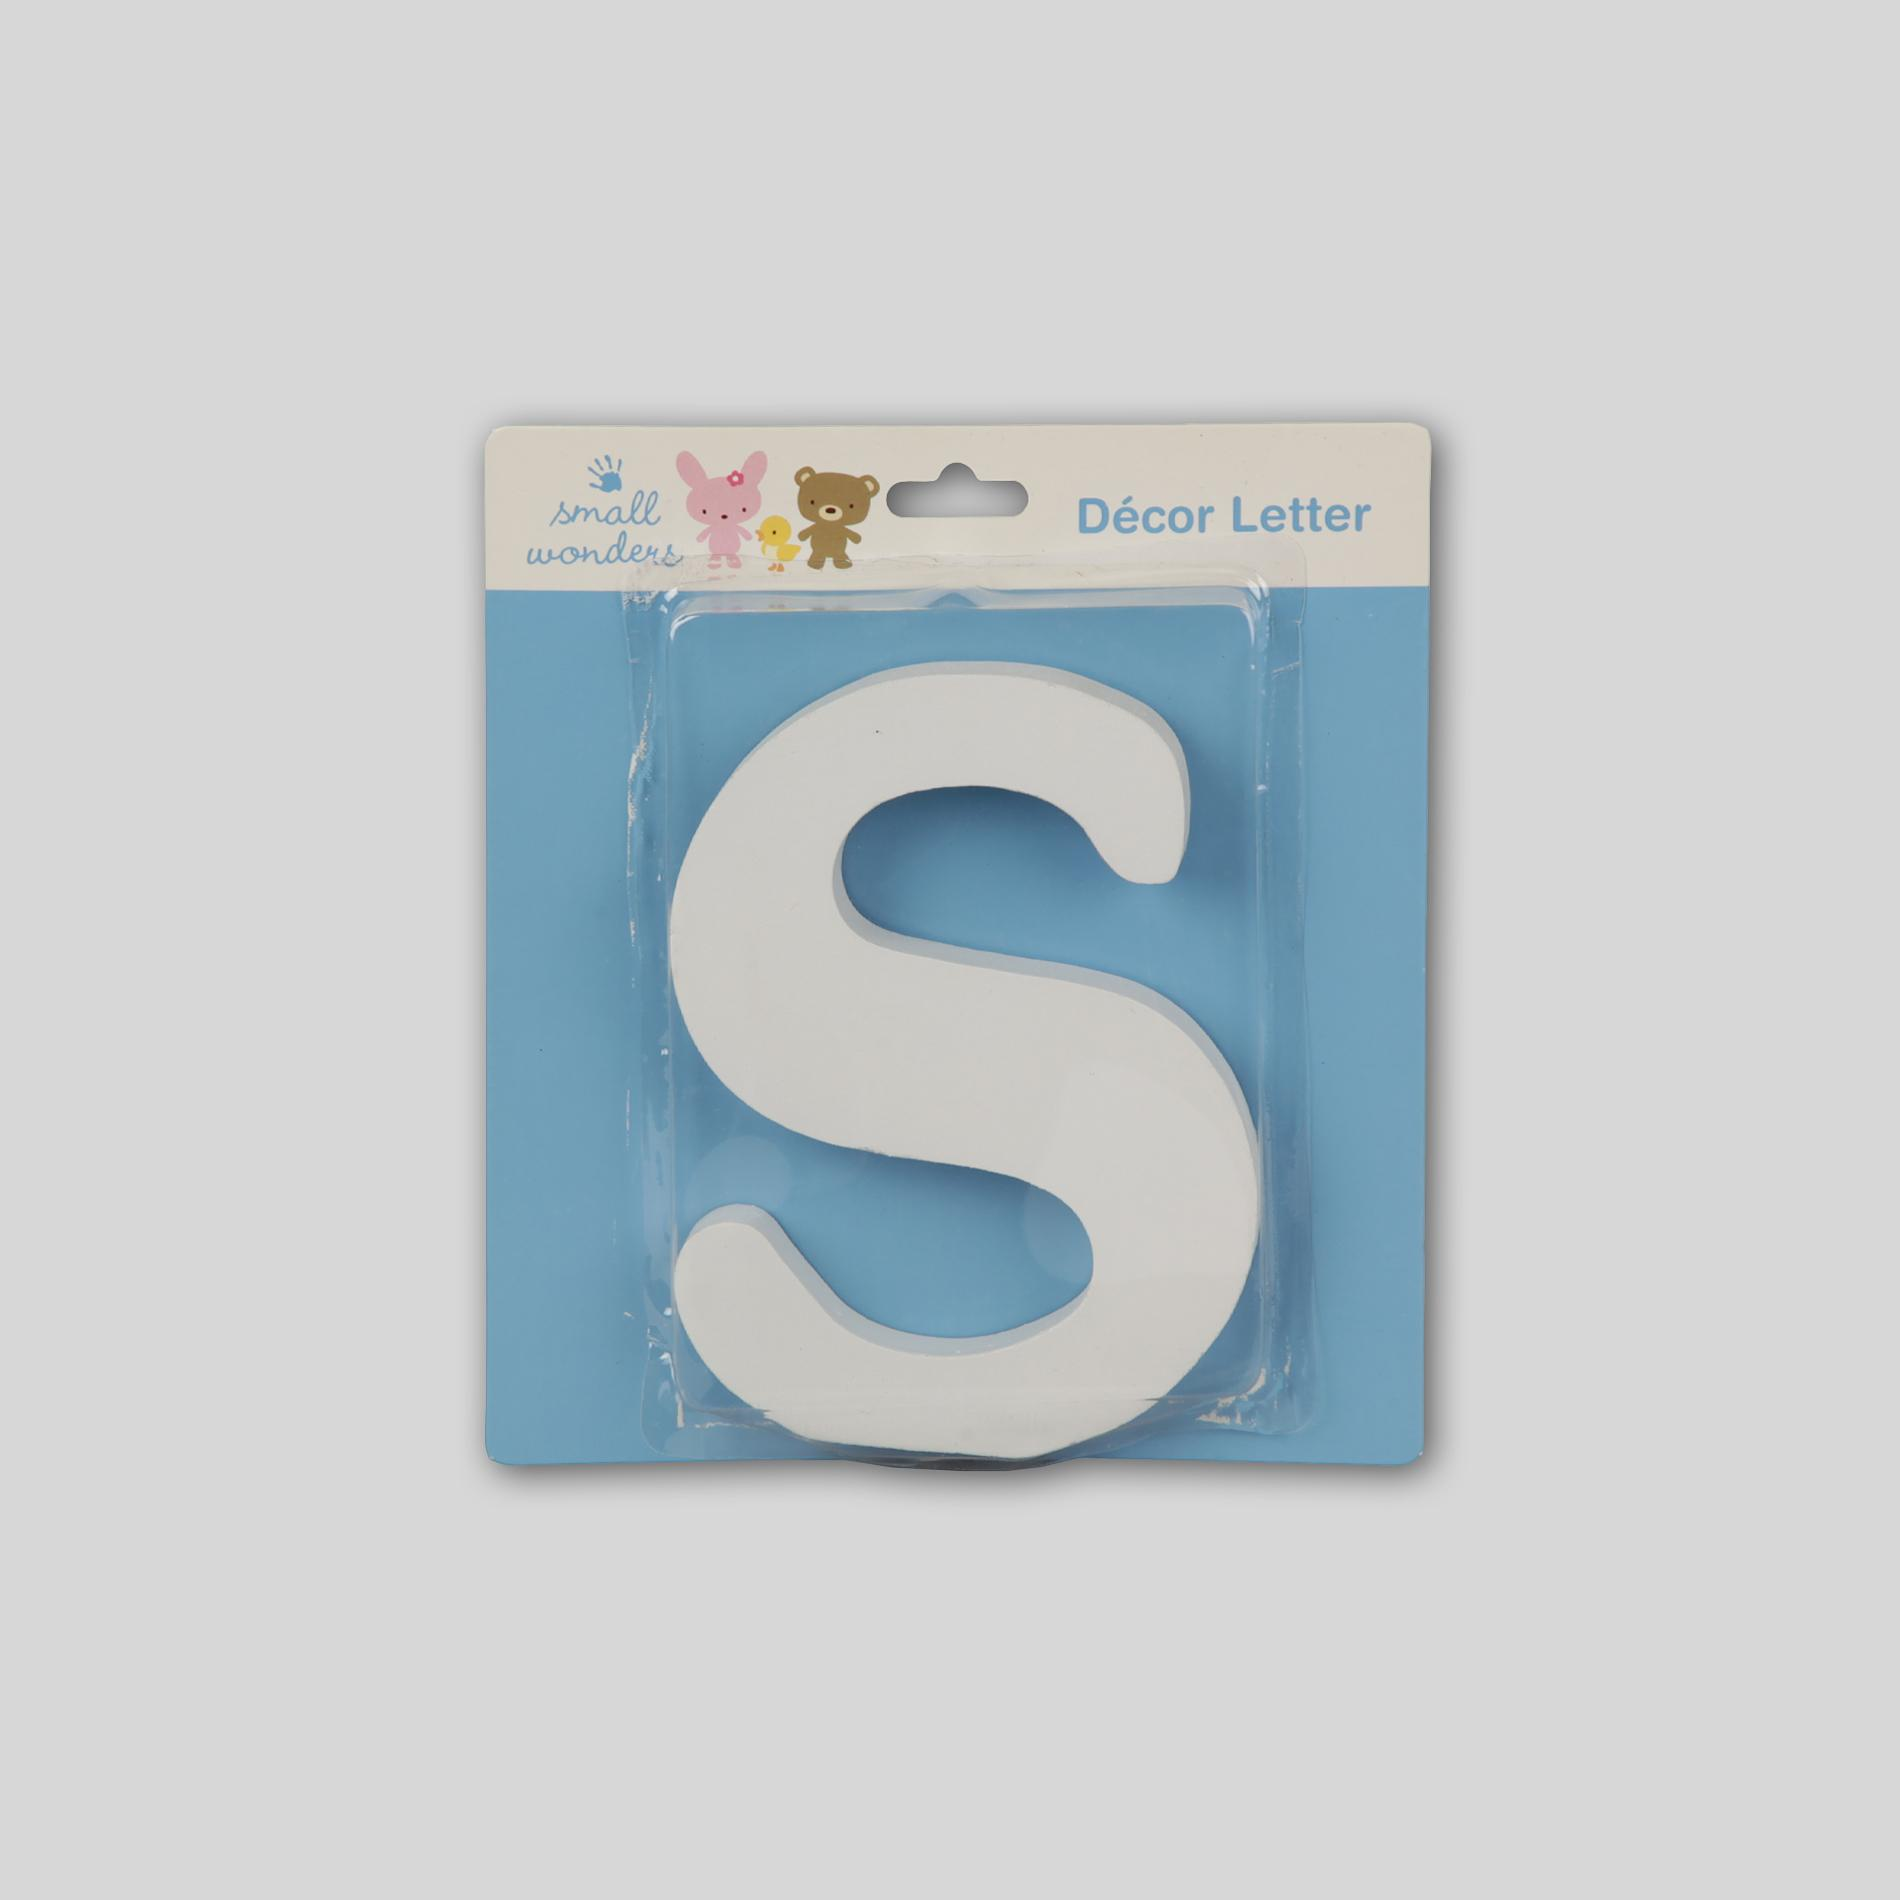 Small Wonders Wooden Letter Wall Decor - Letter S